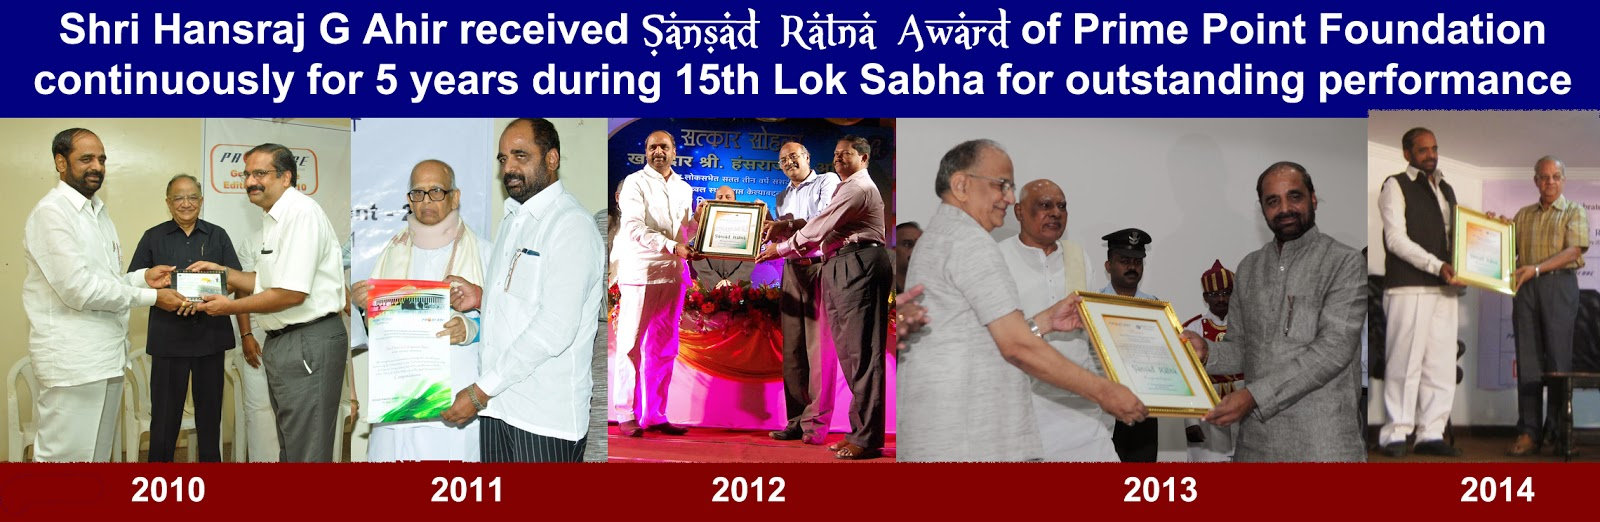 Hansraj Gangaram Ahir received 'Sansad Ratna Award' continuously fo the past 5 years for his consistent performance in the 15th Lok Sabha